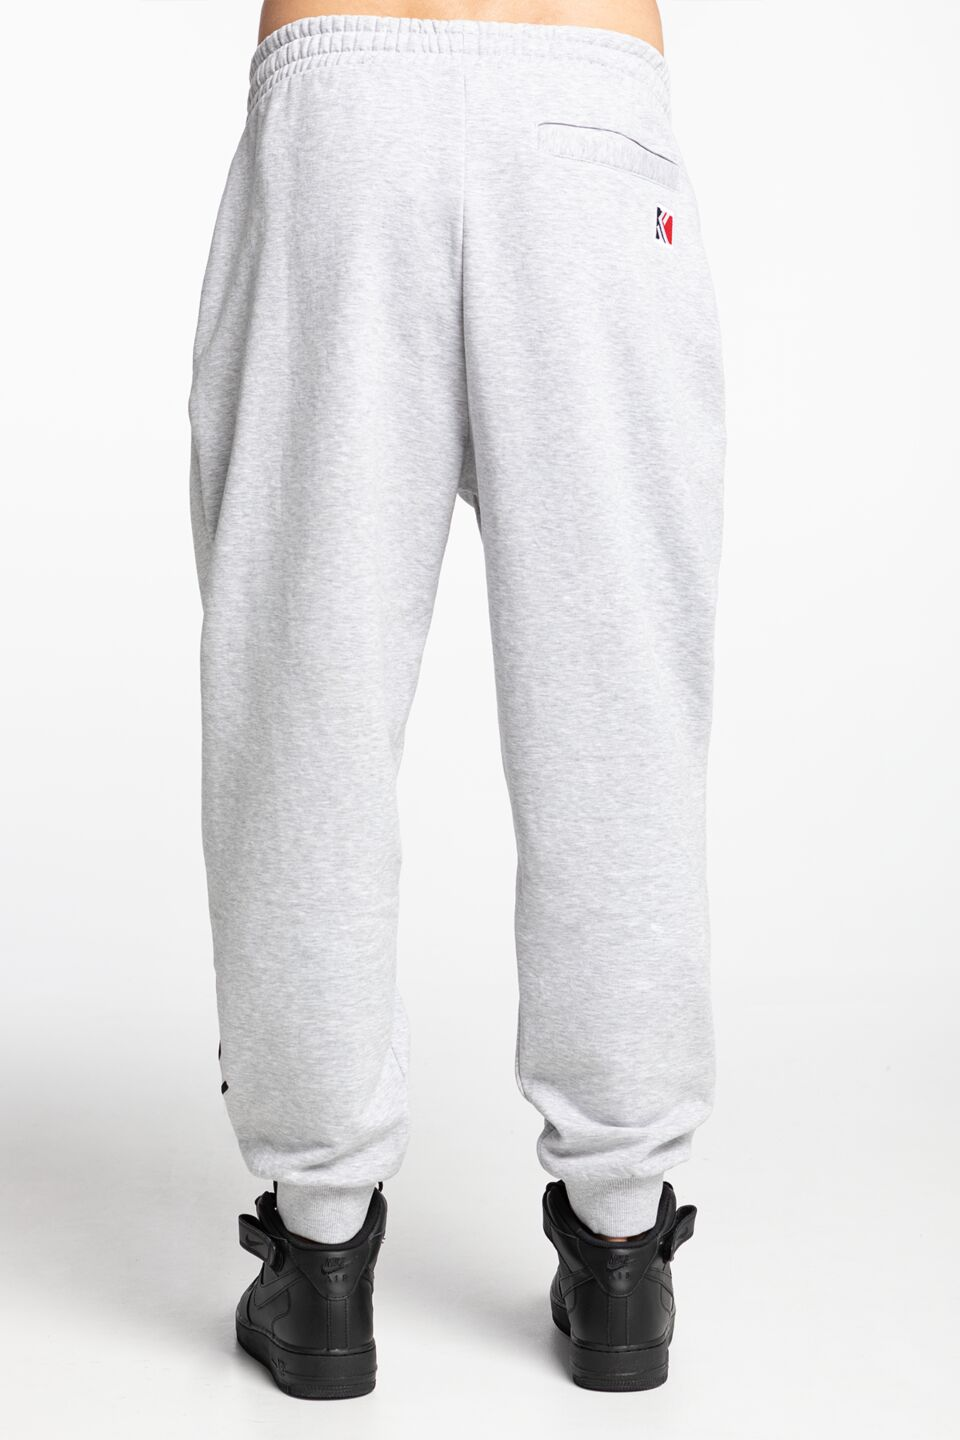 Signature Retro Sweatpants 738 GREY